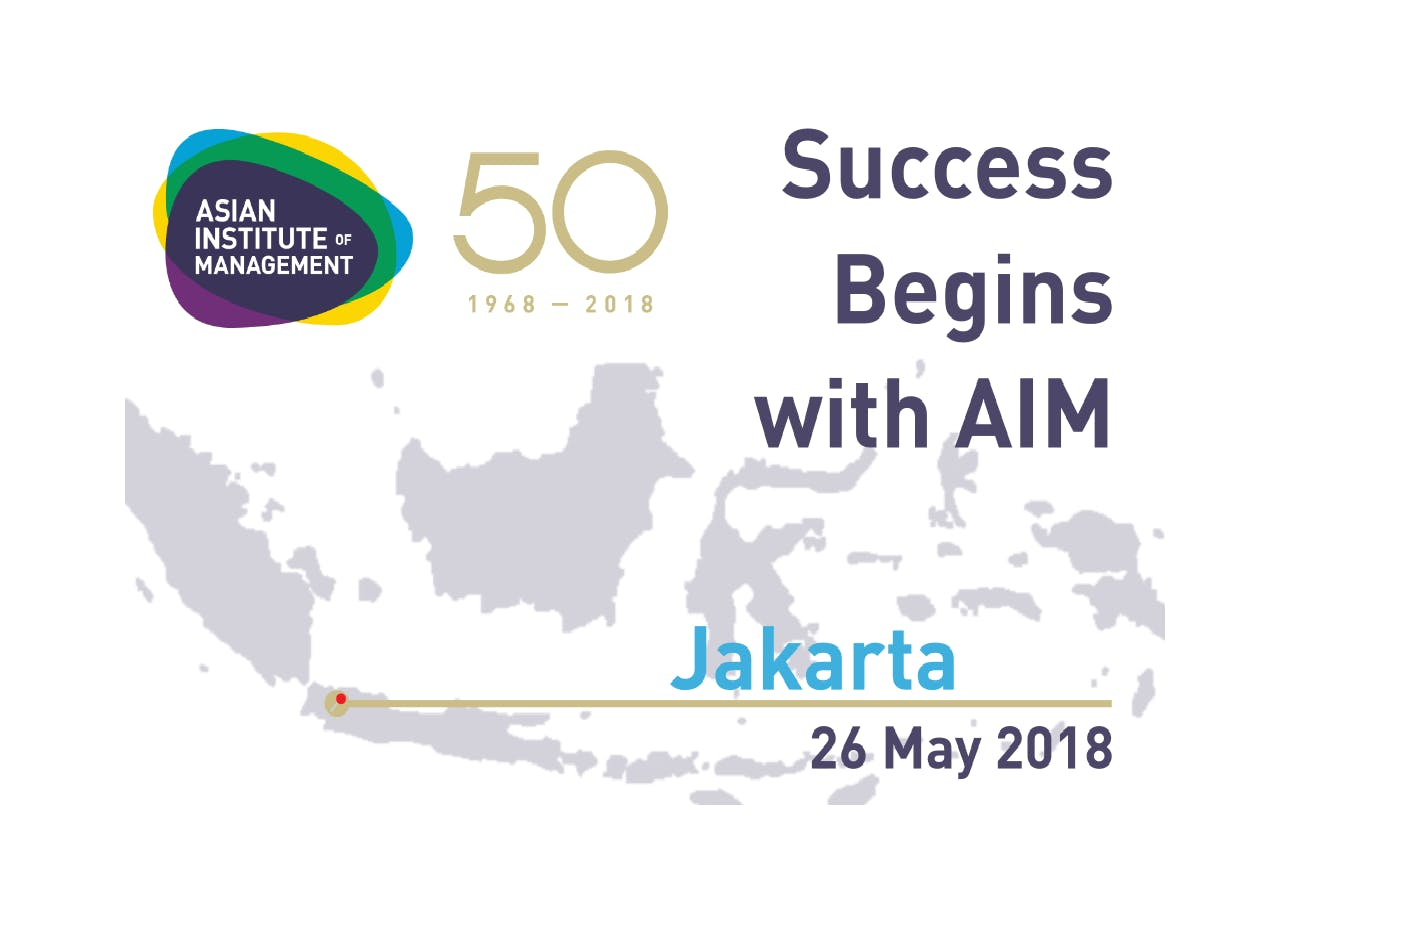 Success Begins with AIM